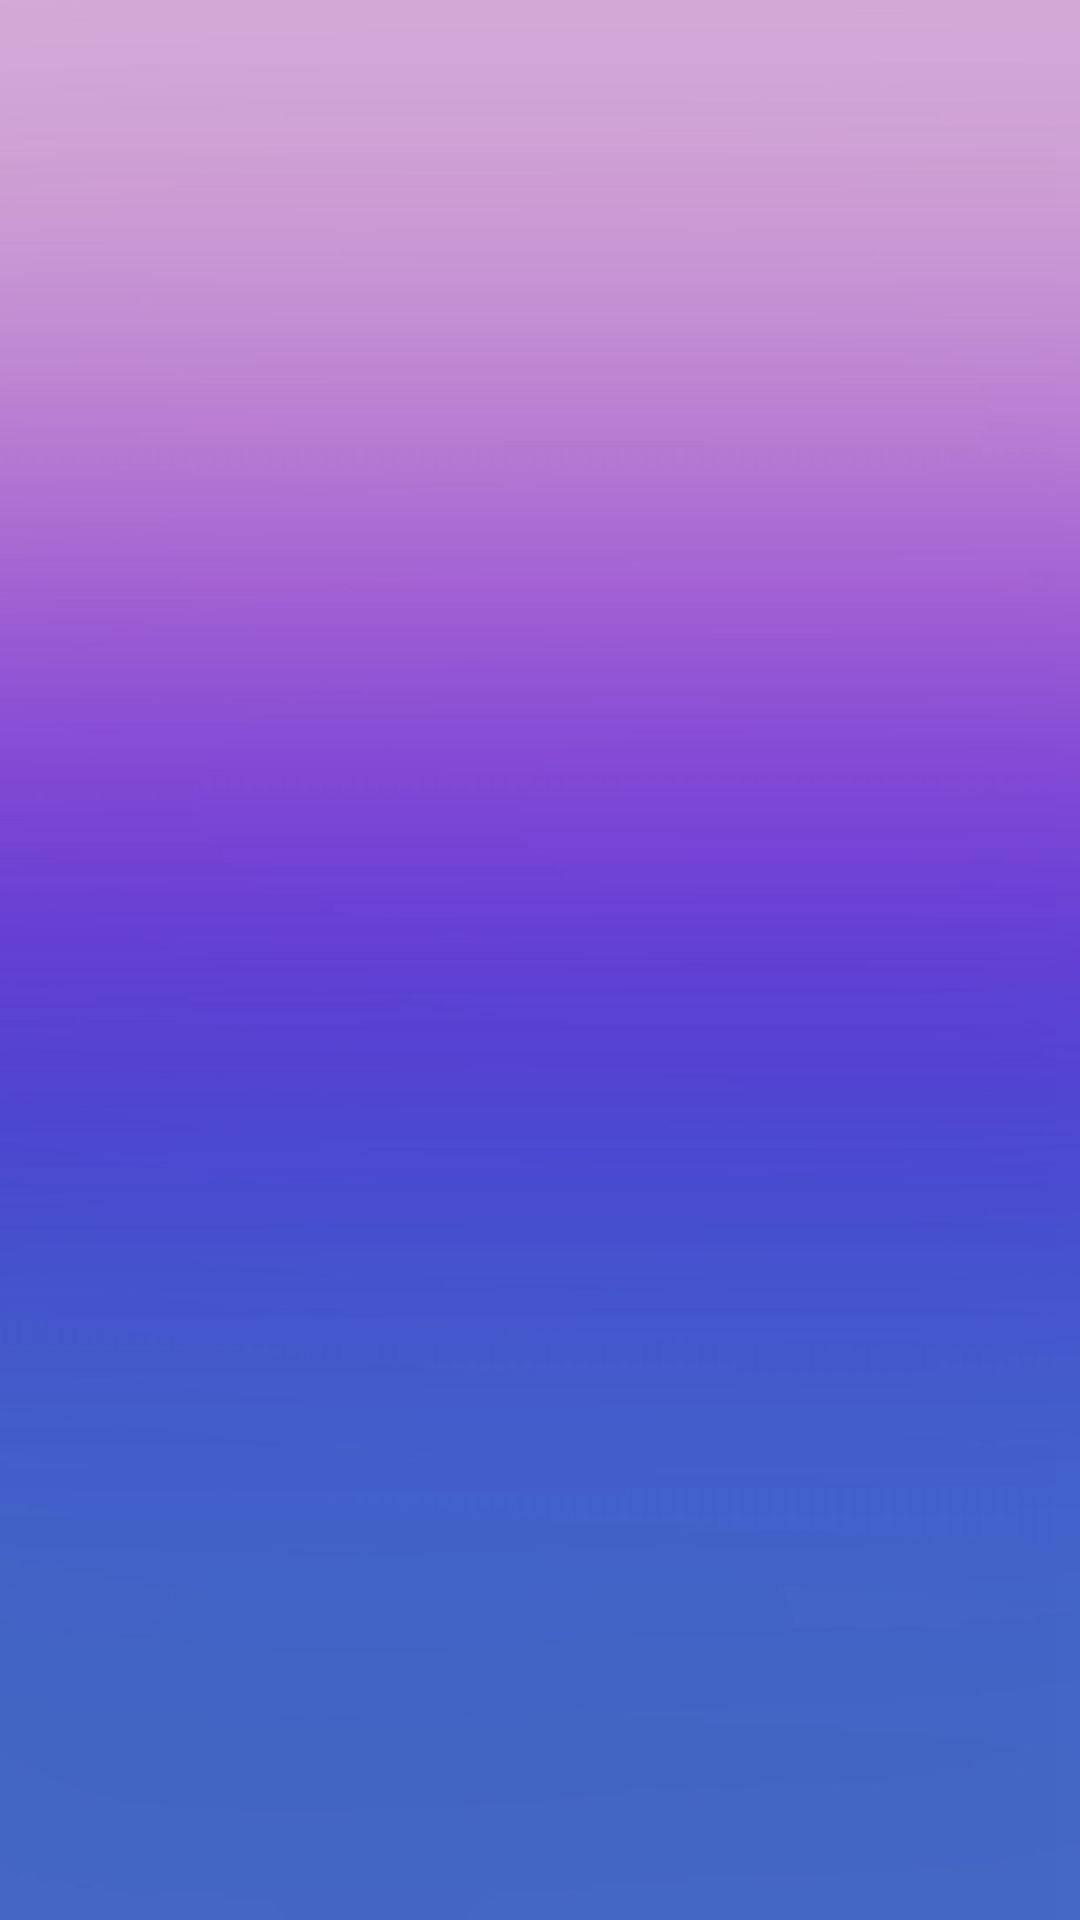 Wallpaper iphone violet - Purple Mania Gradation Blur Iphone 6 Wallpaper